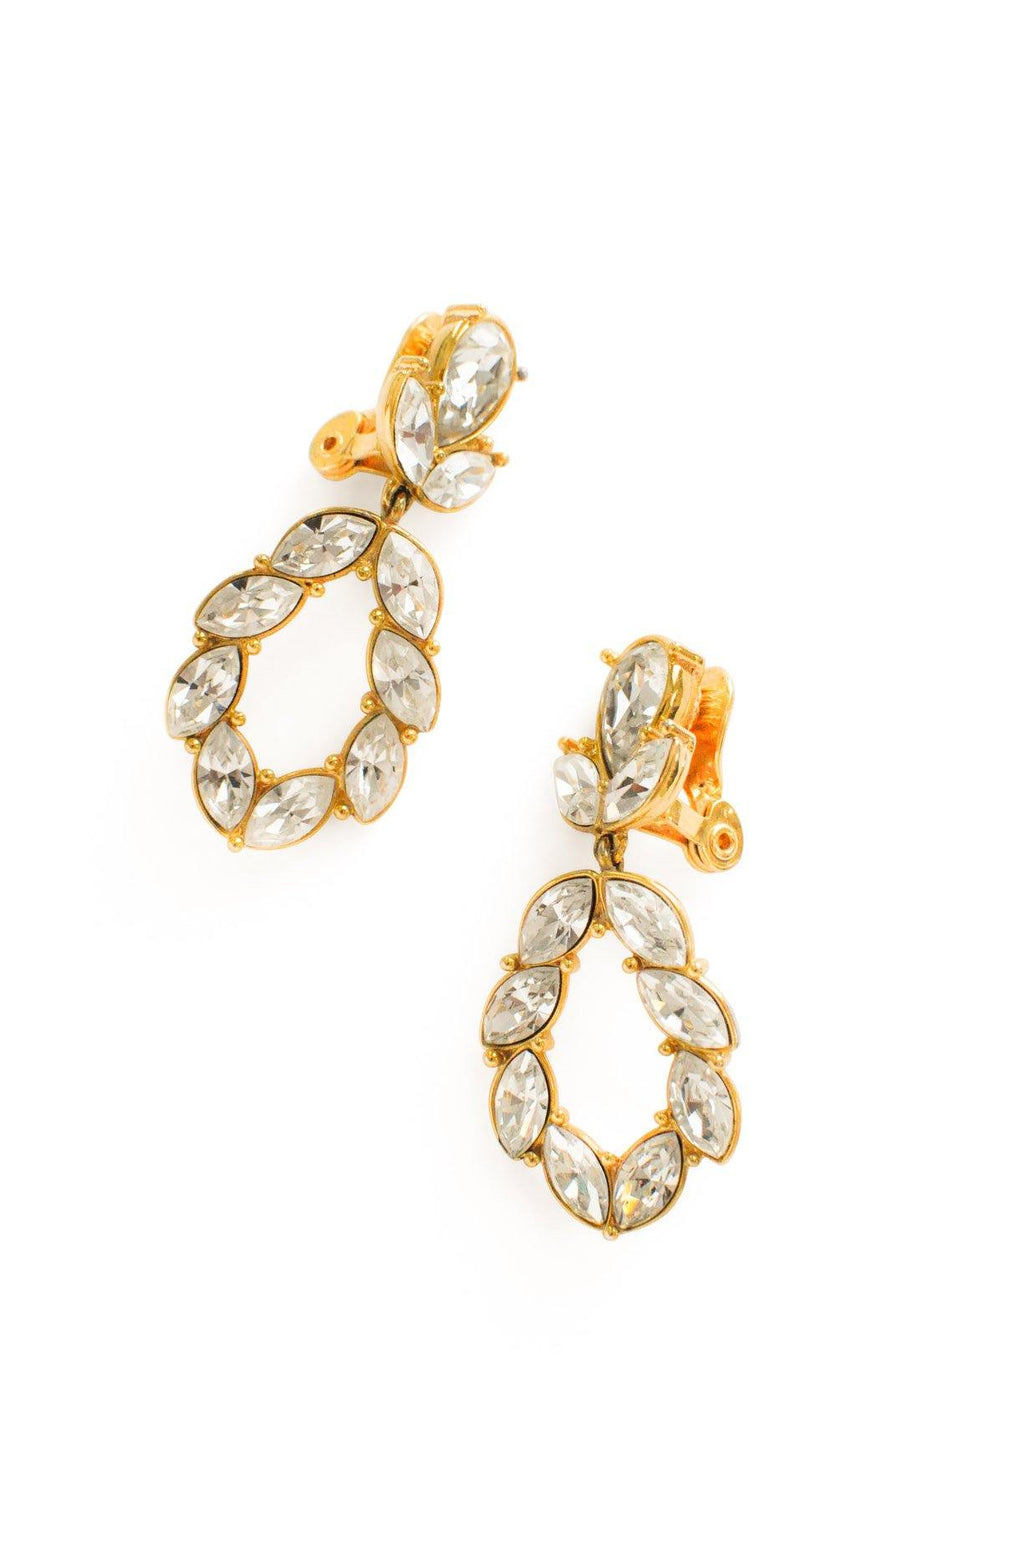 Rhinestone Teardrop Clip-on Earrings